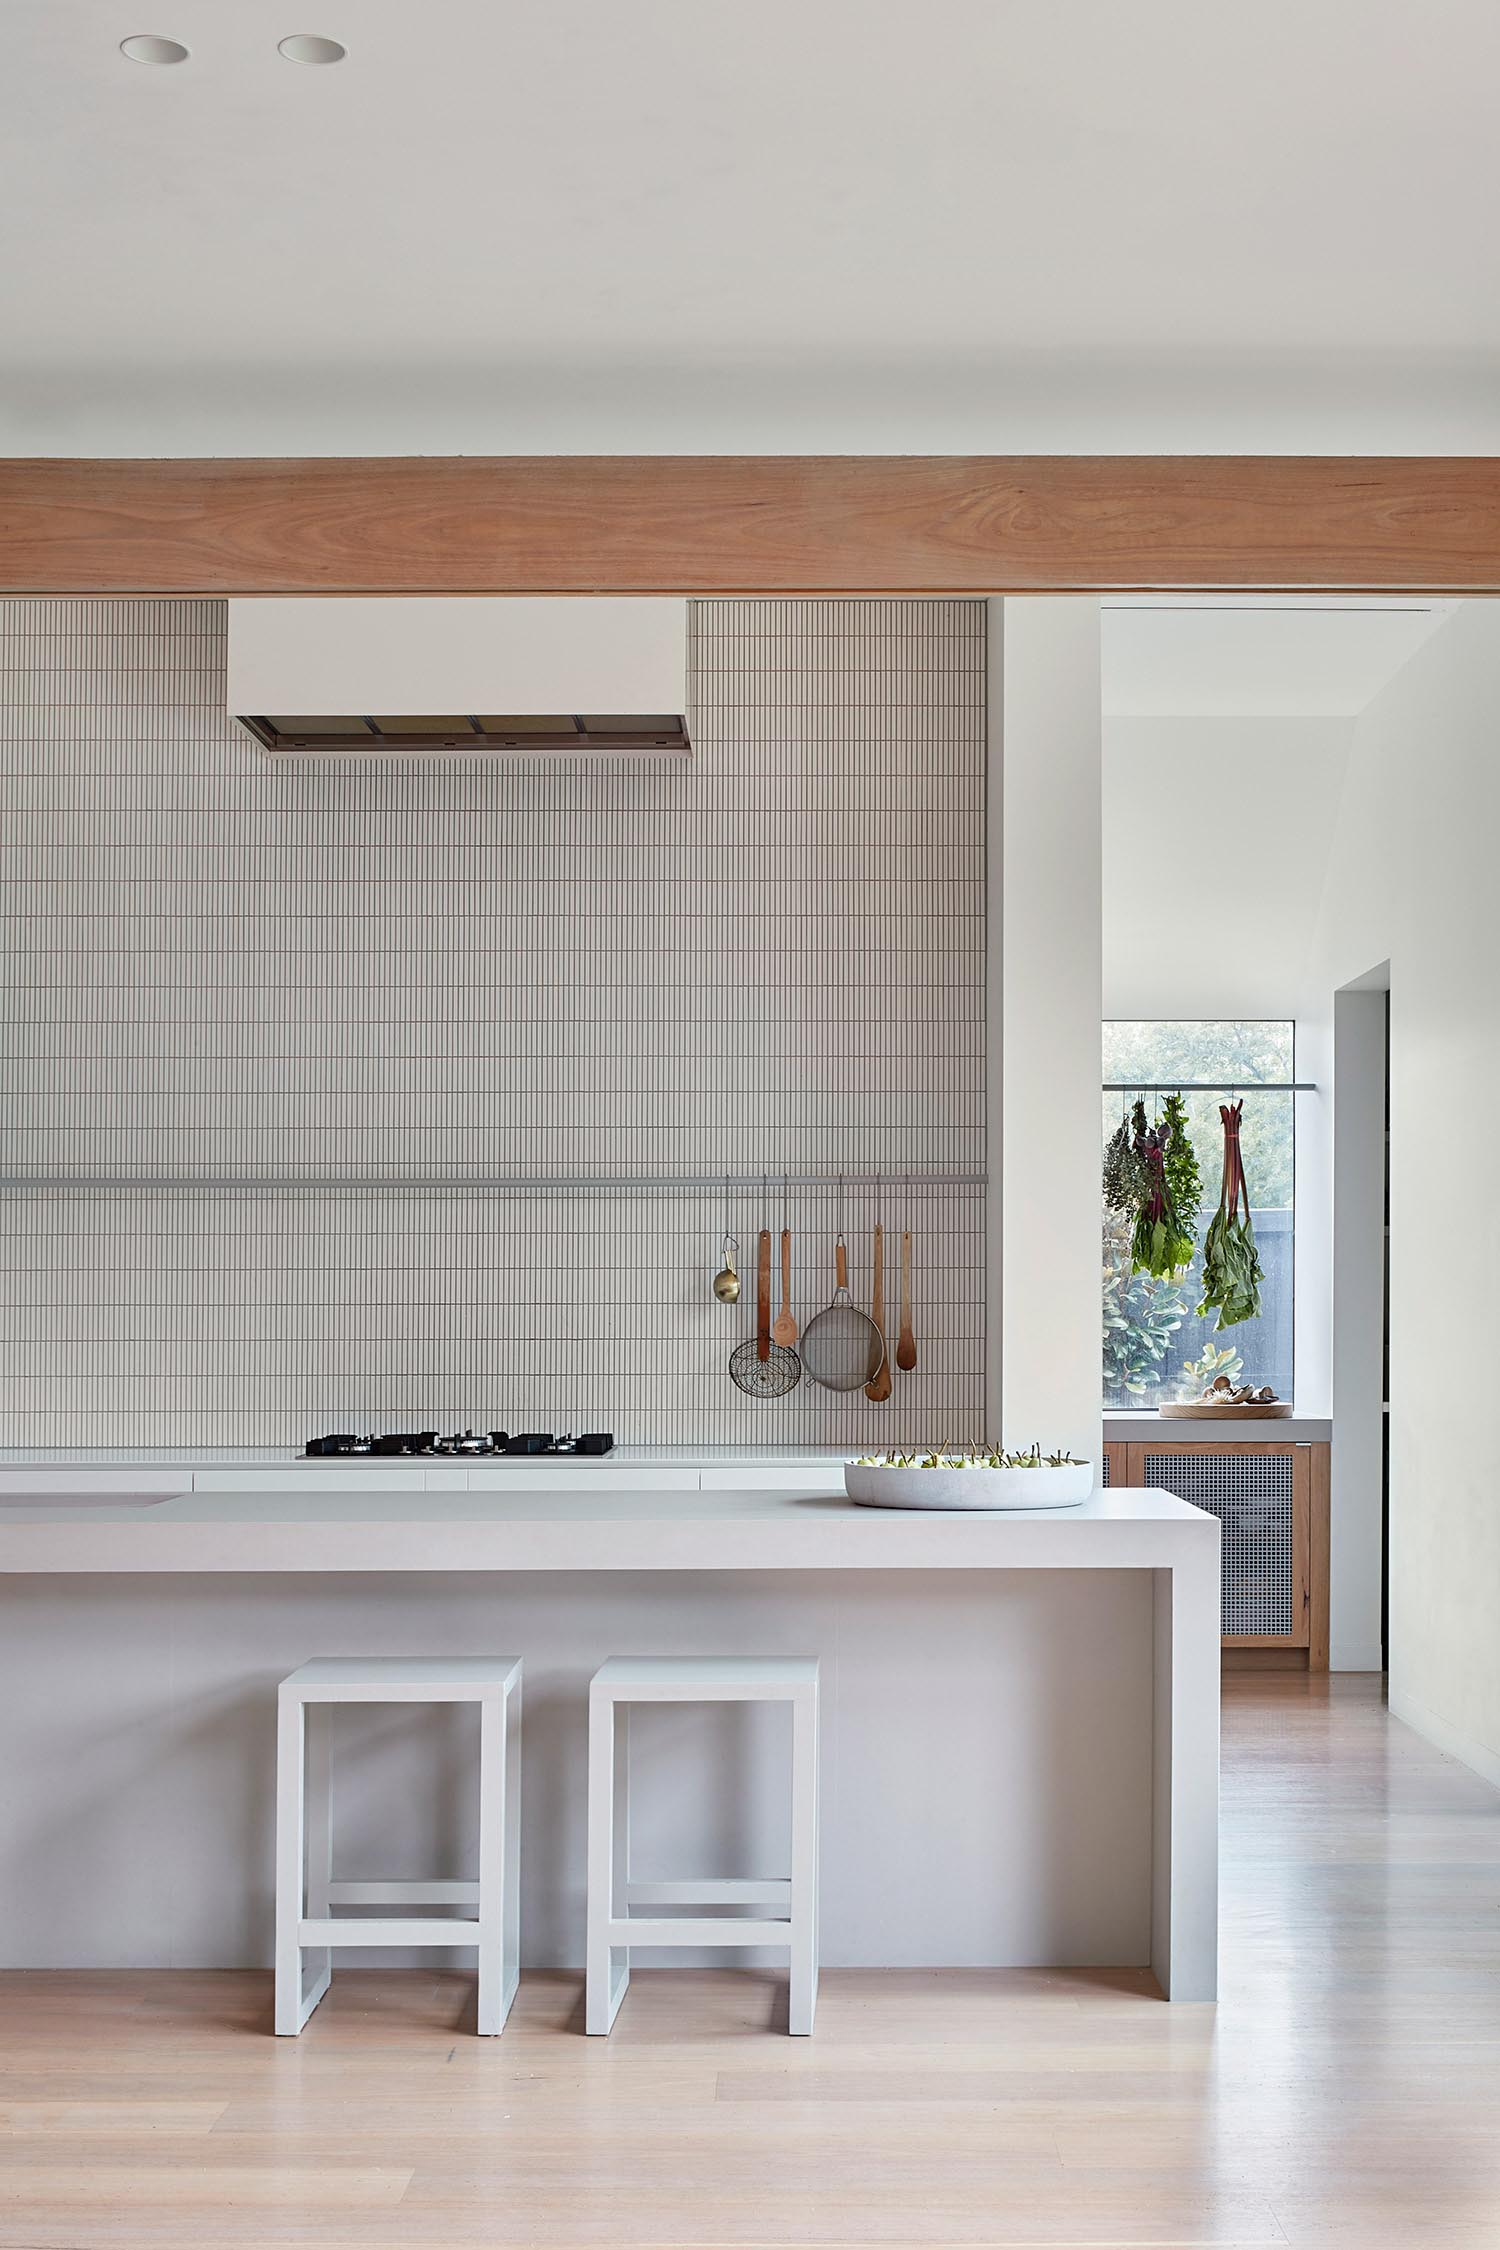 A minimalist kitchen with an island and tiled wall.